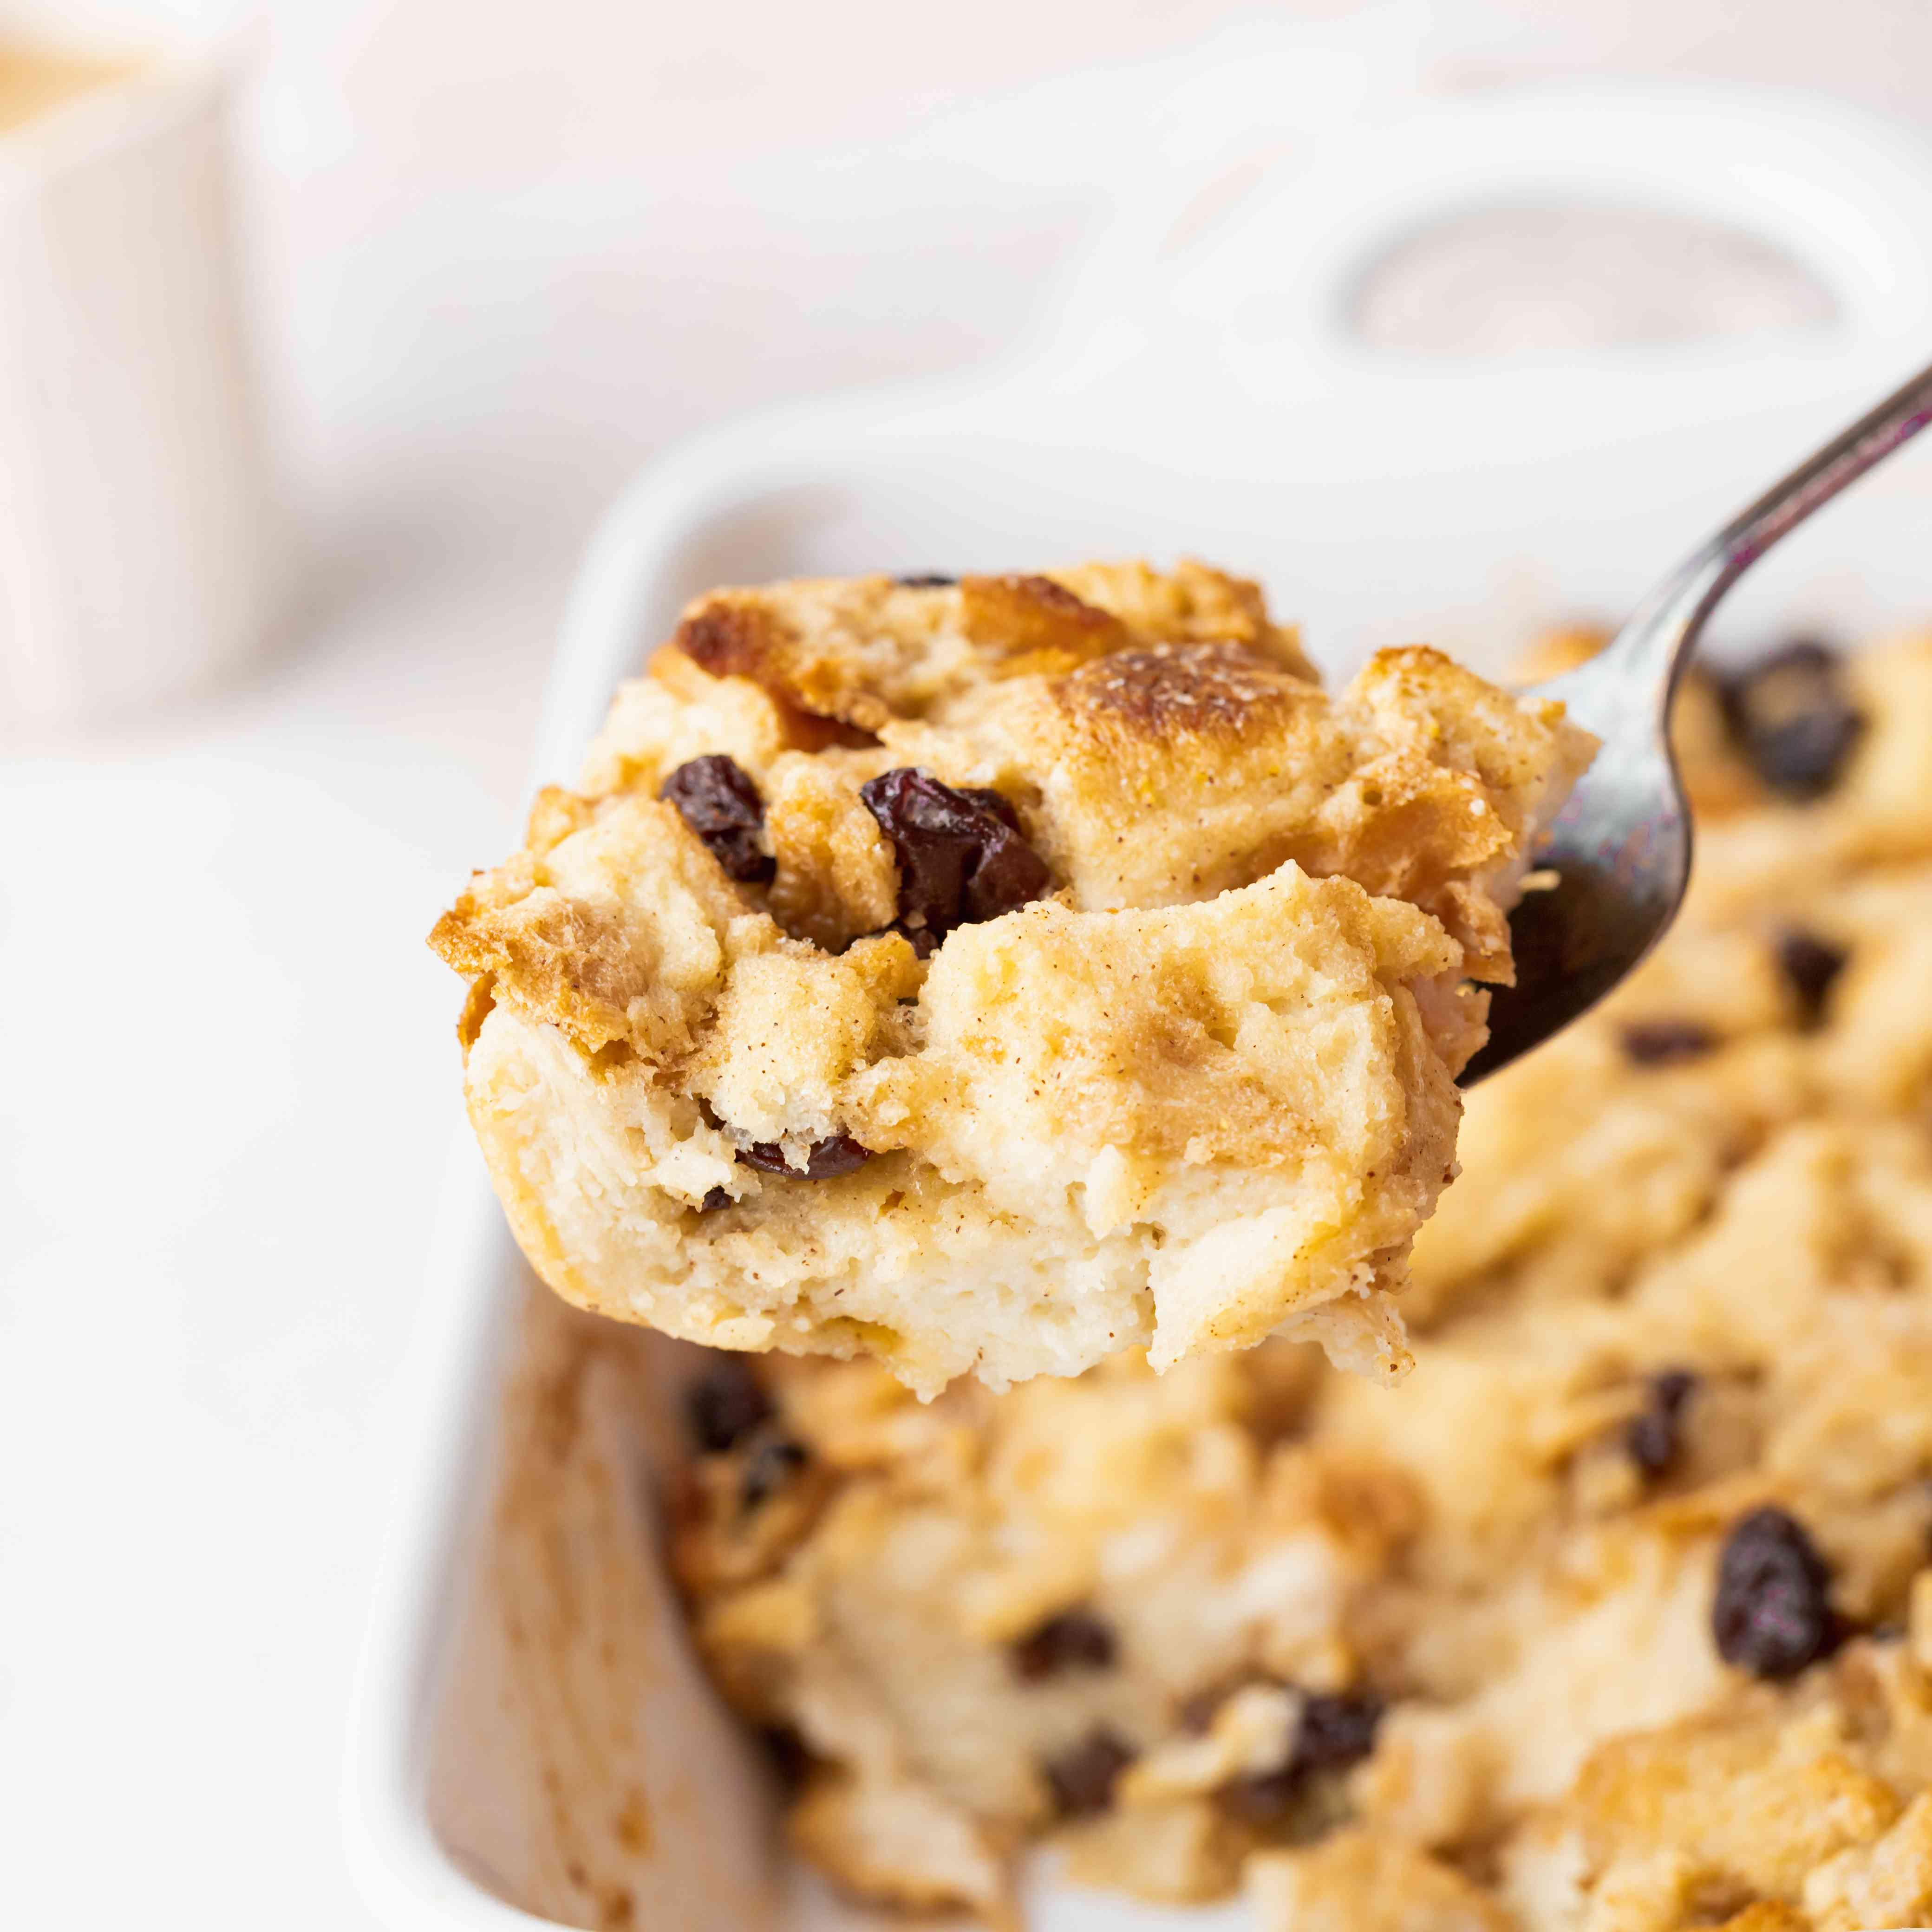 Scooping easy bread pudding out of a white casserole dish.